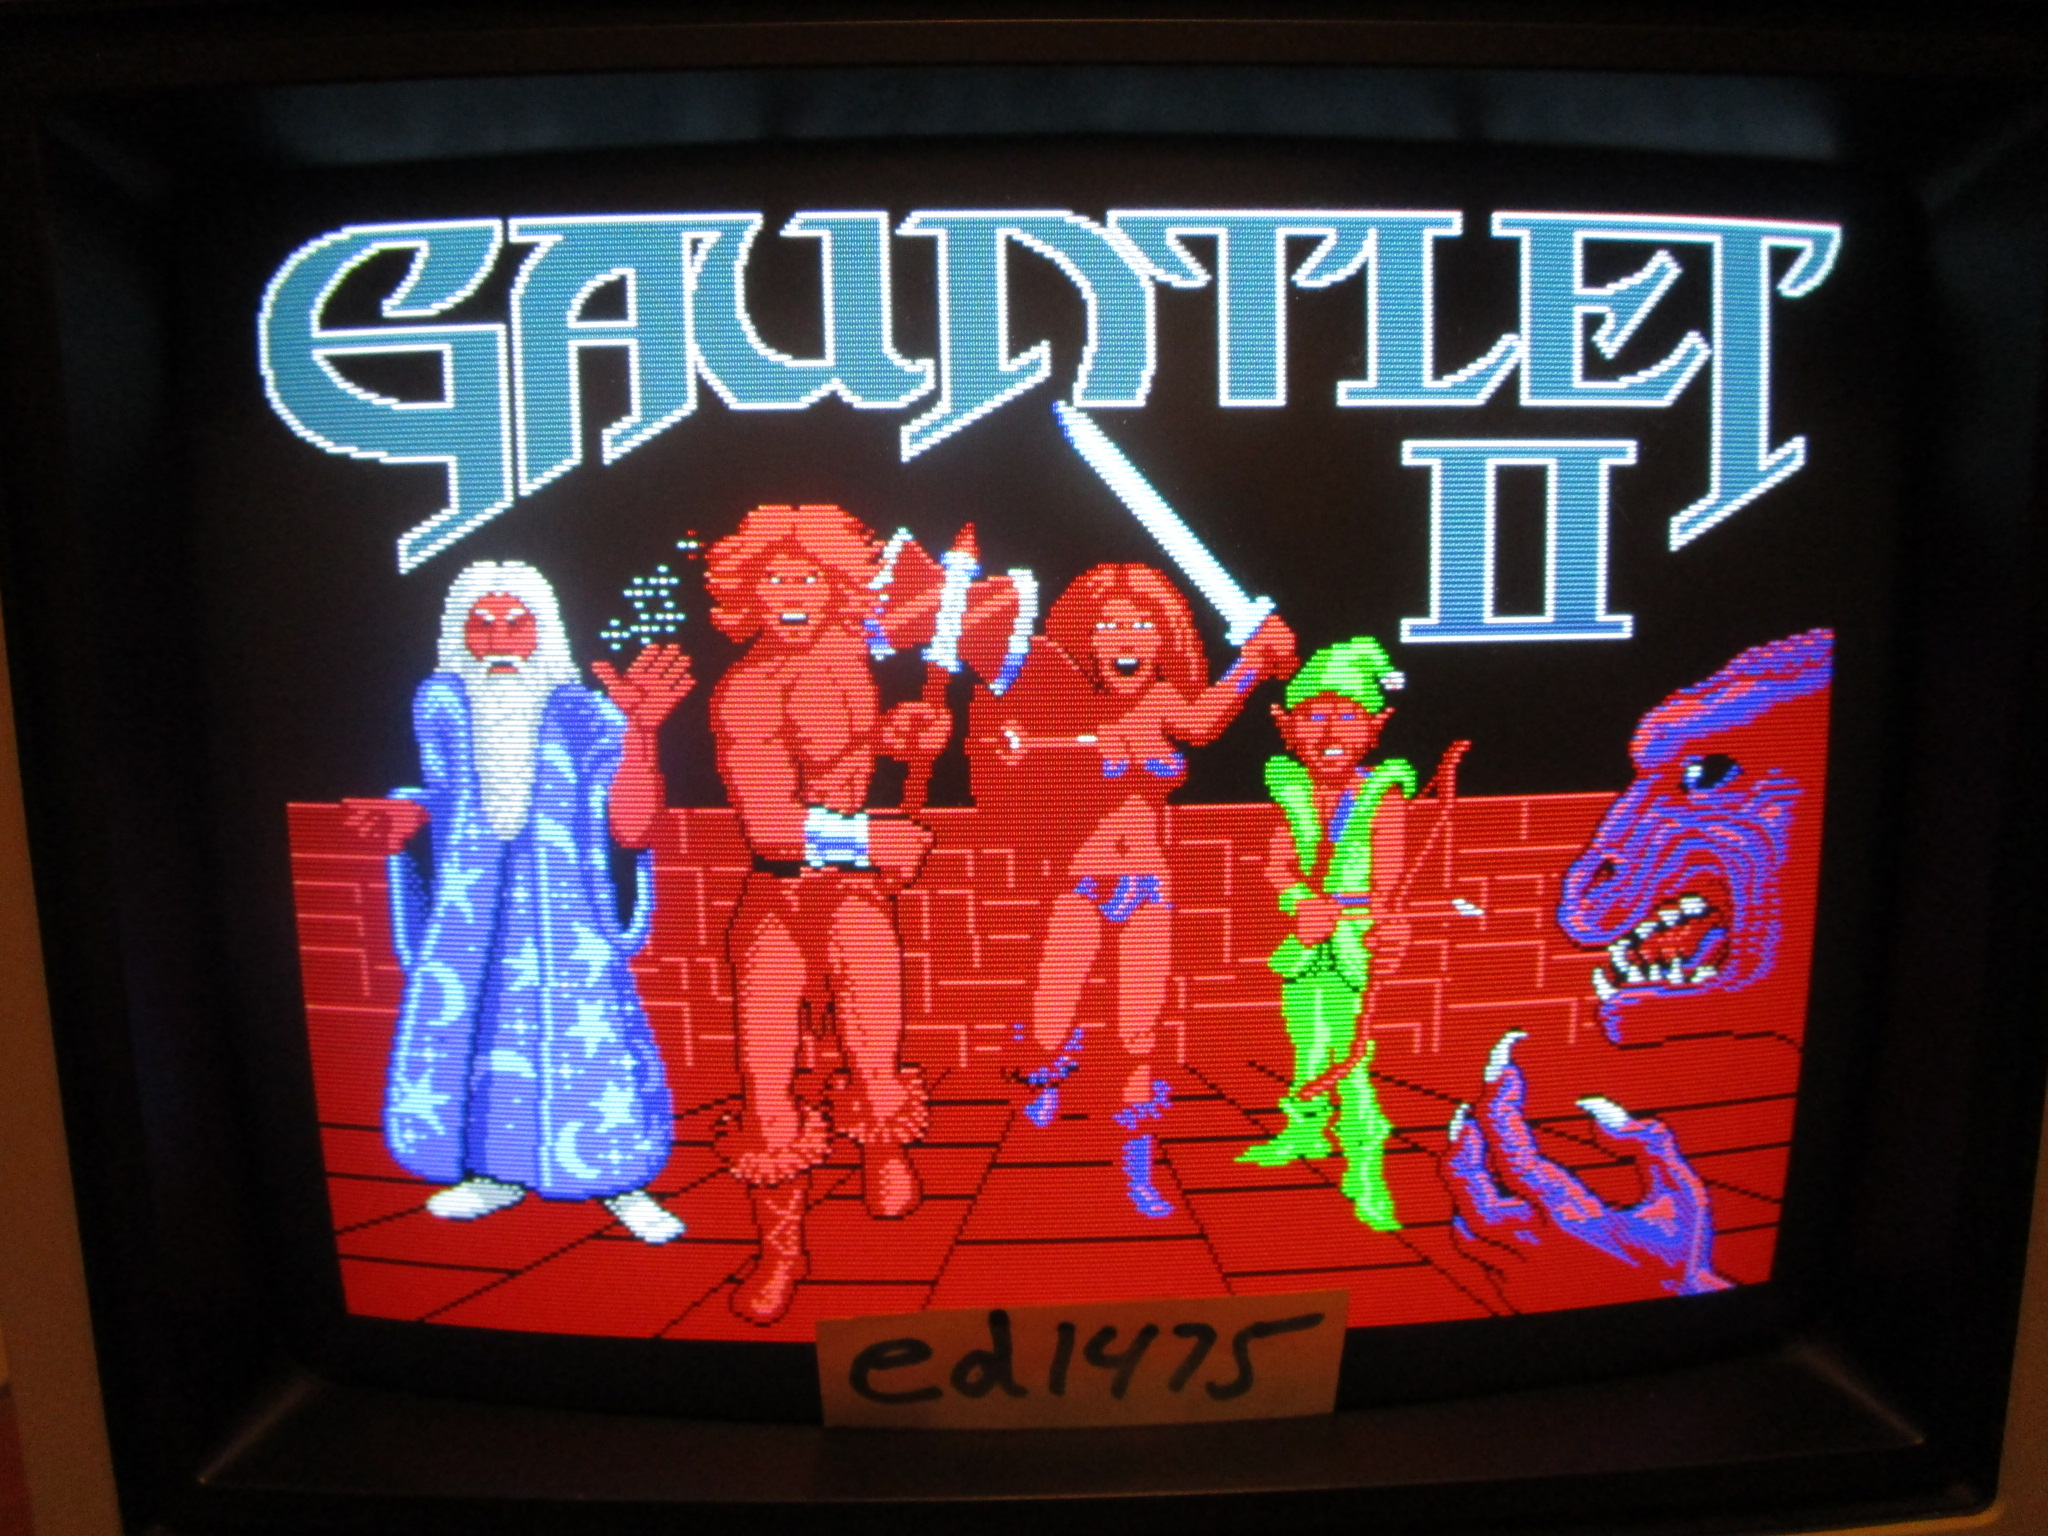 ed1475: Gauntlet II (PC) 3,160 points on 2015-02-02 21:10:30